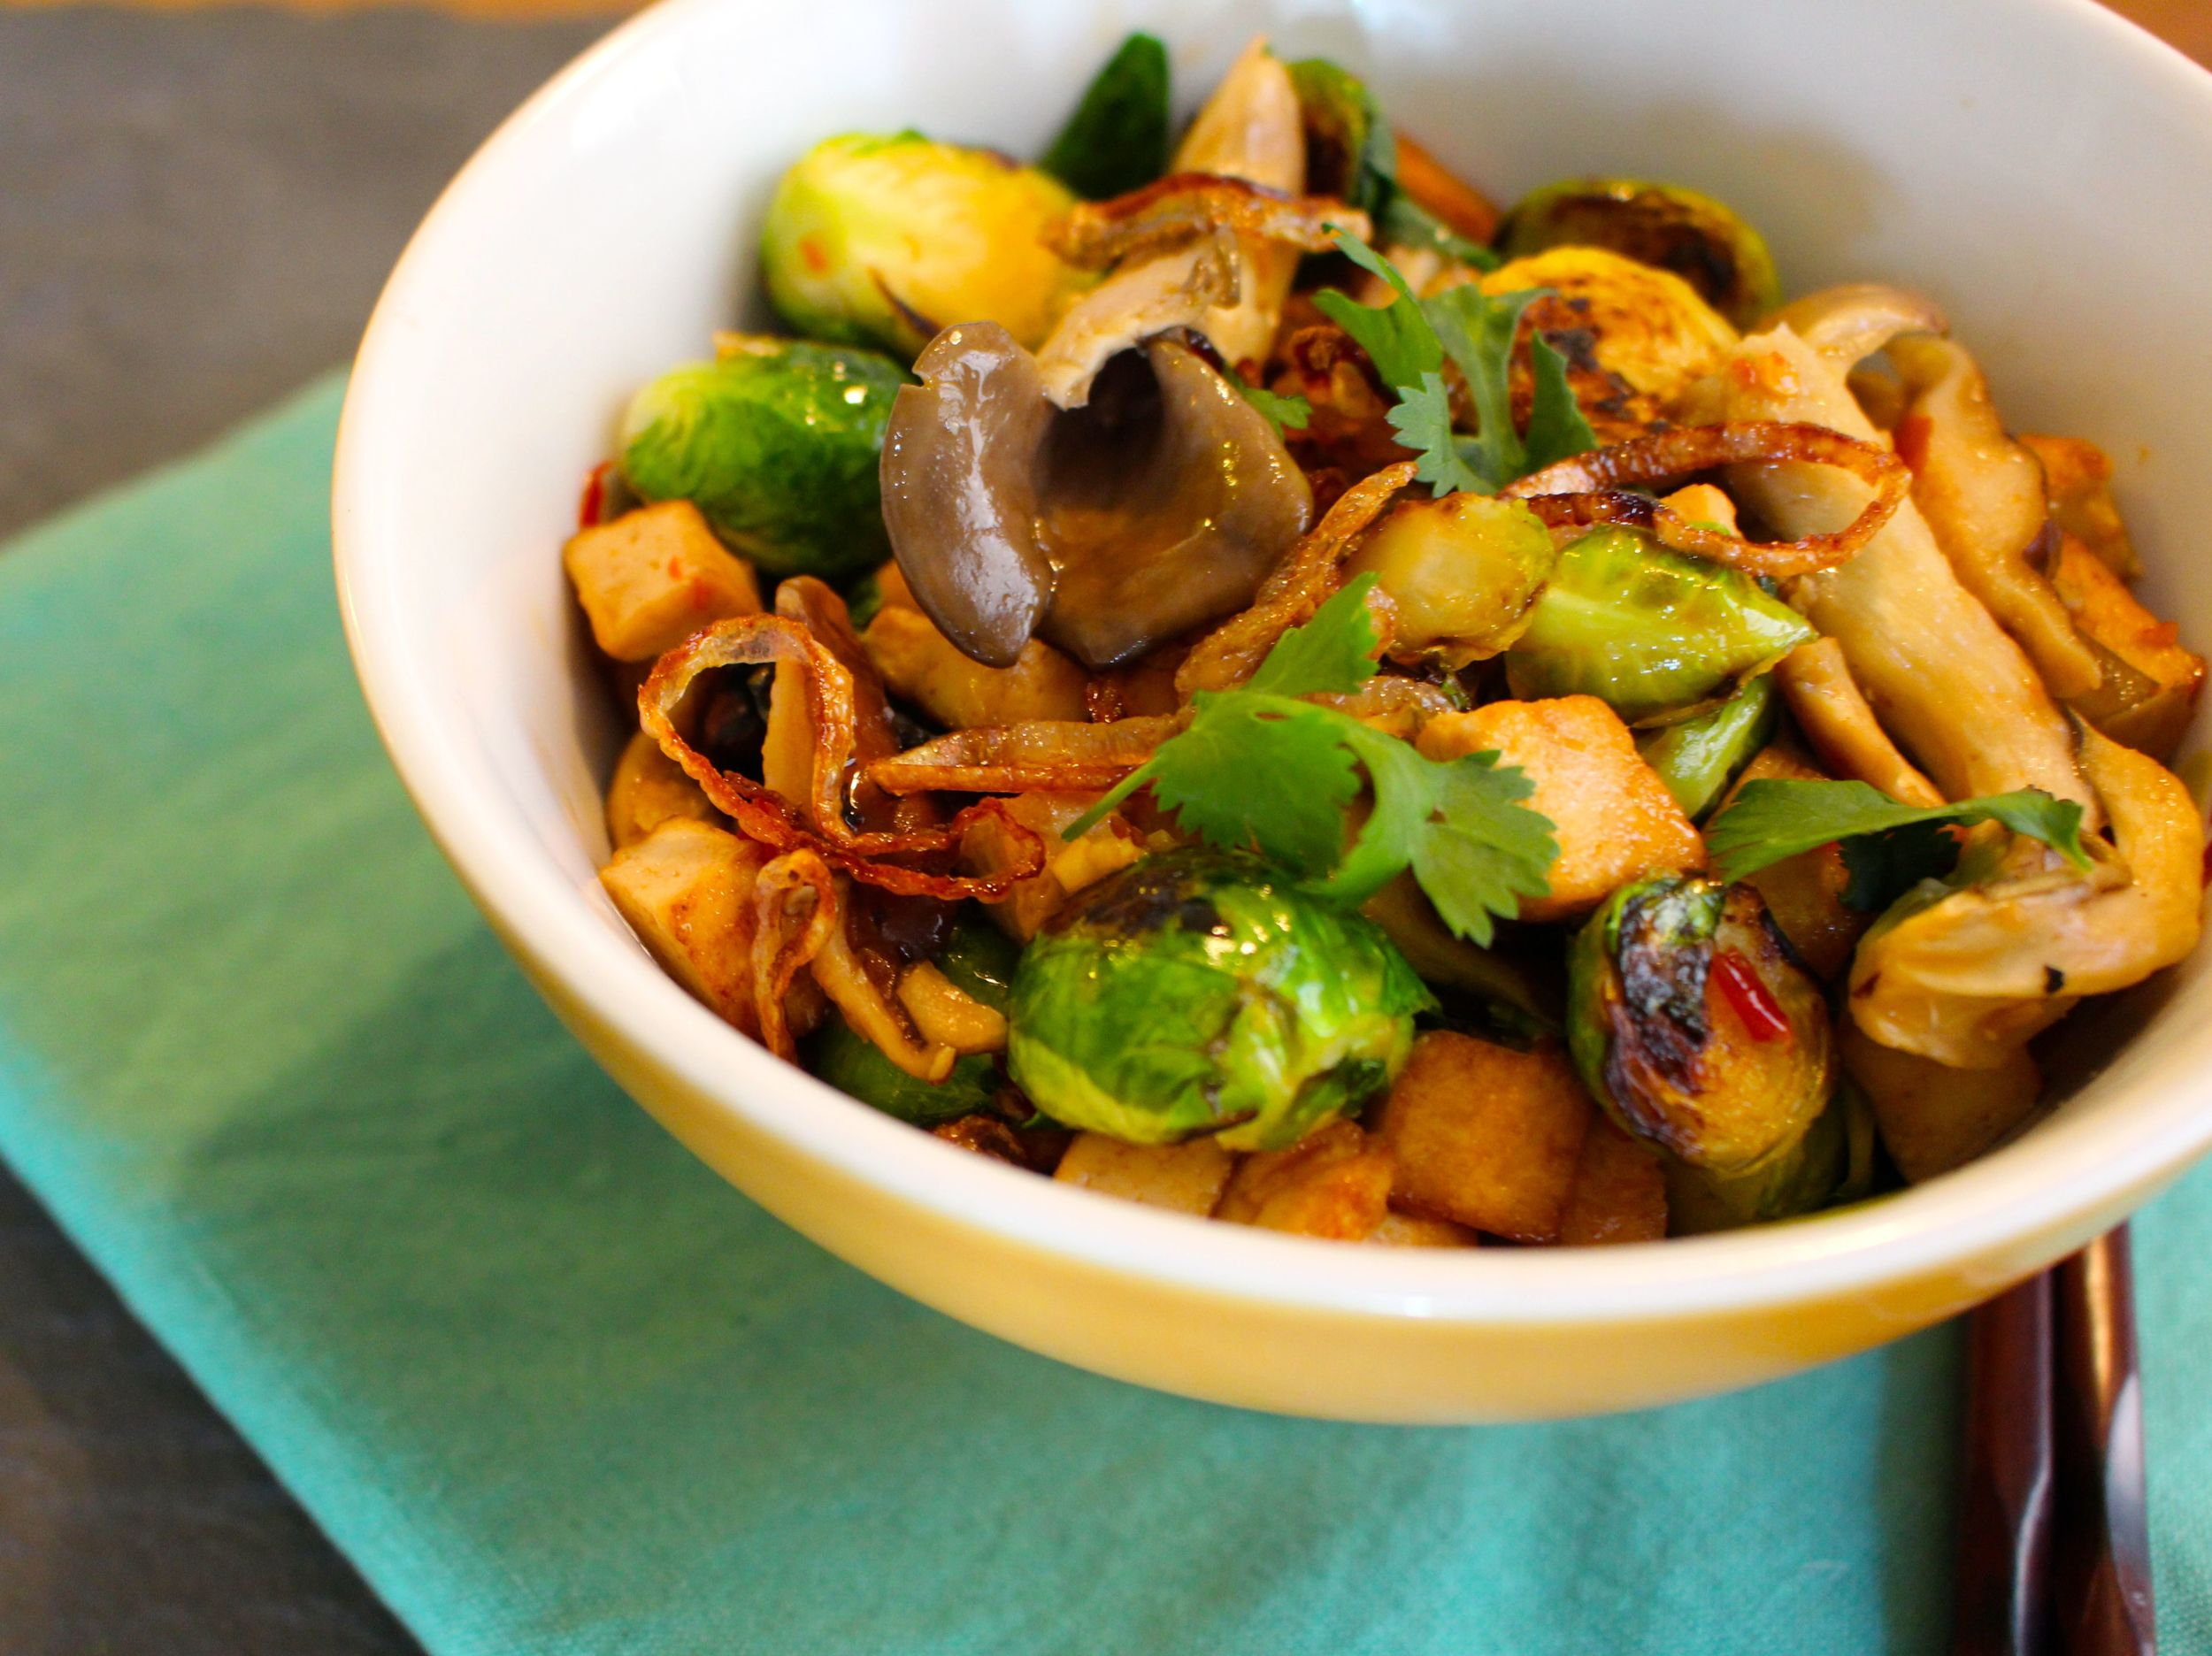 Sweet Chili Brussels Sprouts with Tofu and Mushrooms